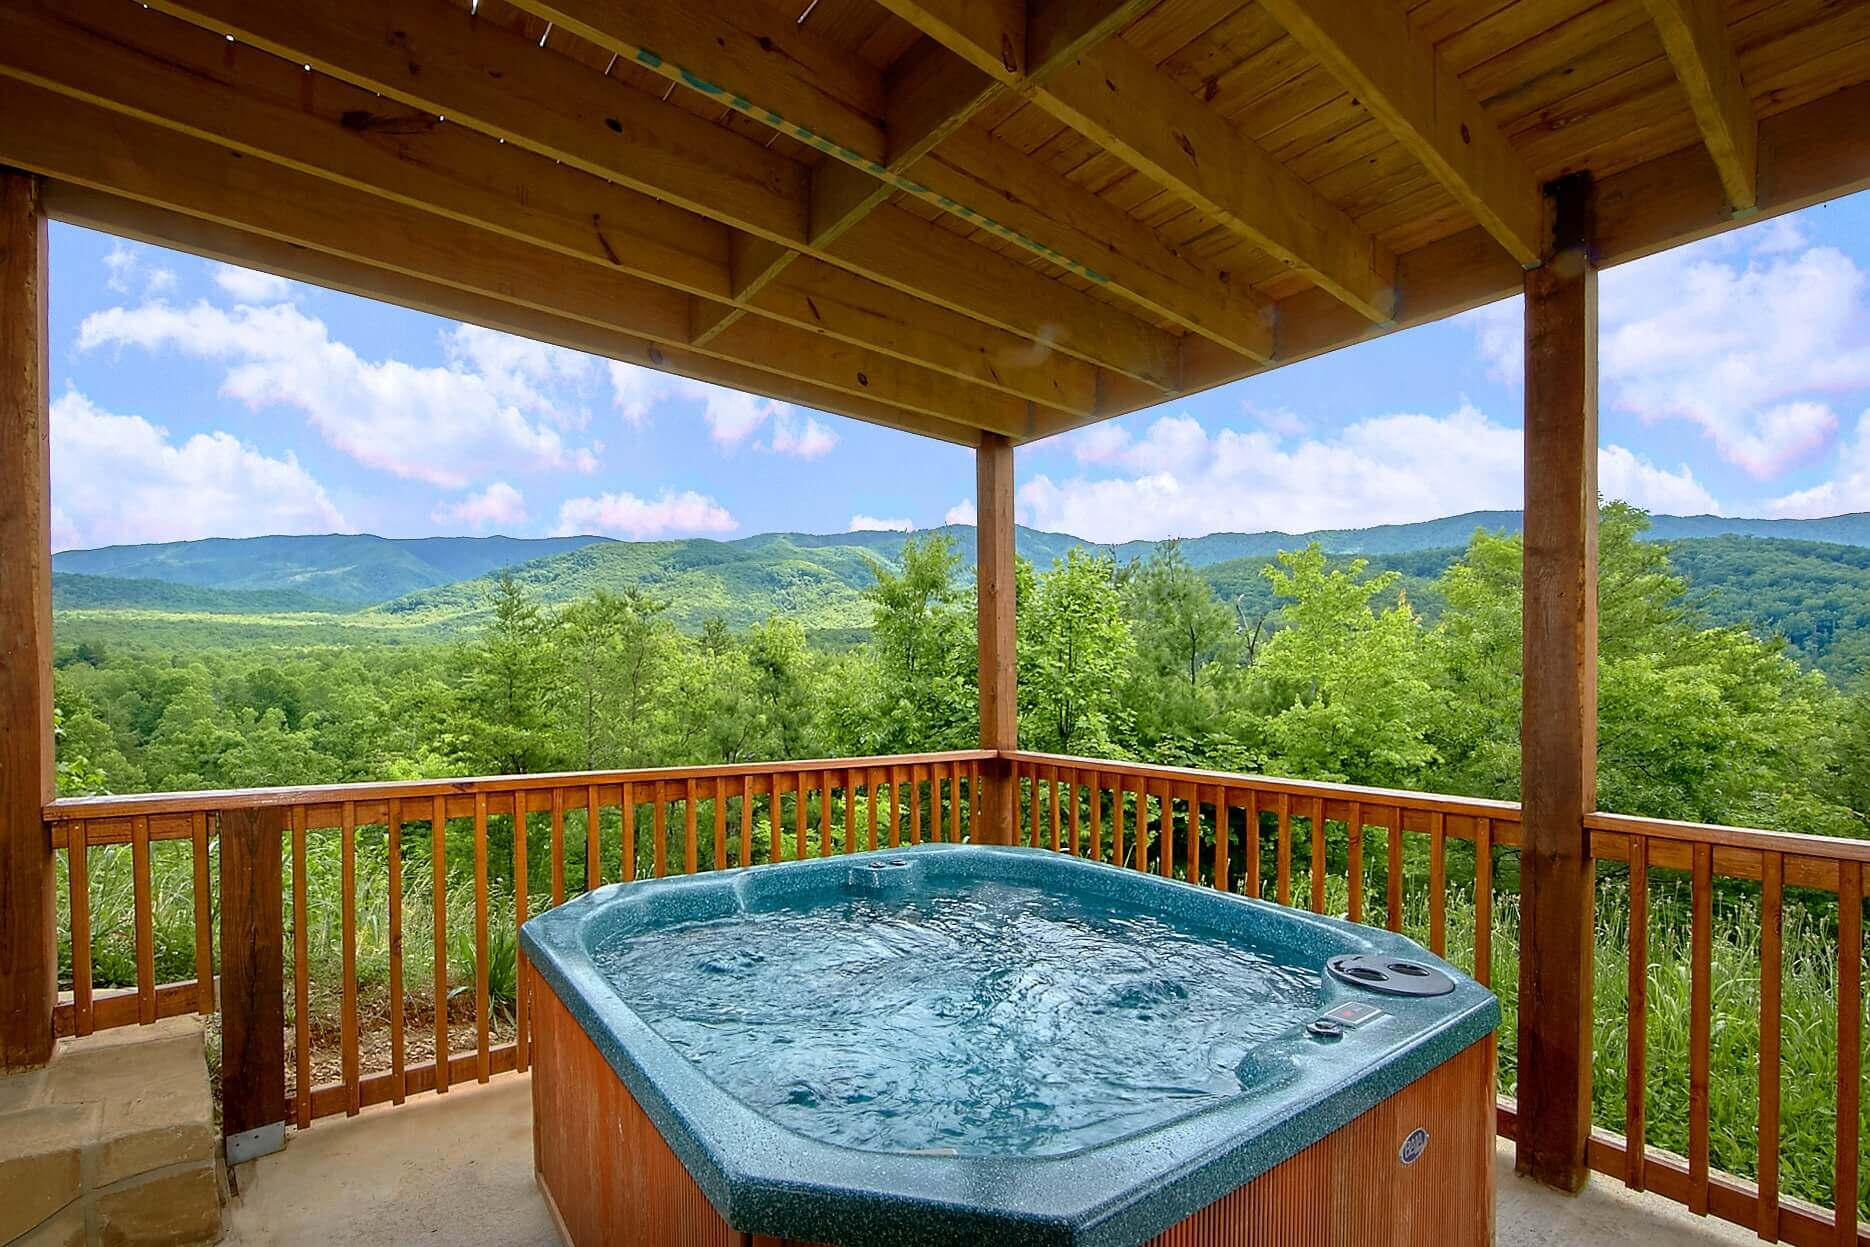 cabins rustic rent owner vacation friendly mountains smoky door for rentals indoor cabin tn sale s vrbo rental by pool tennessee gatlinburg in pet gatlburg